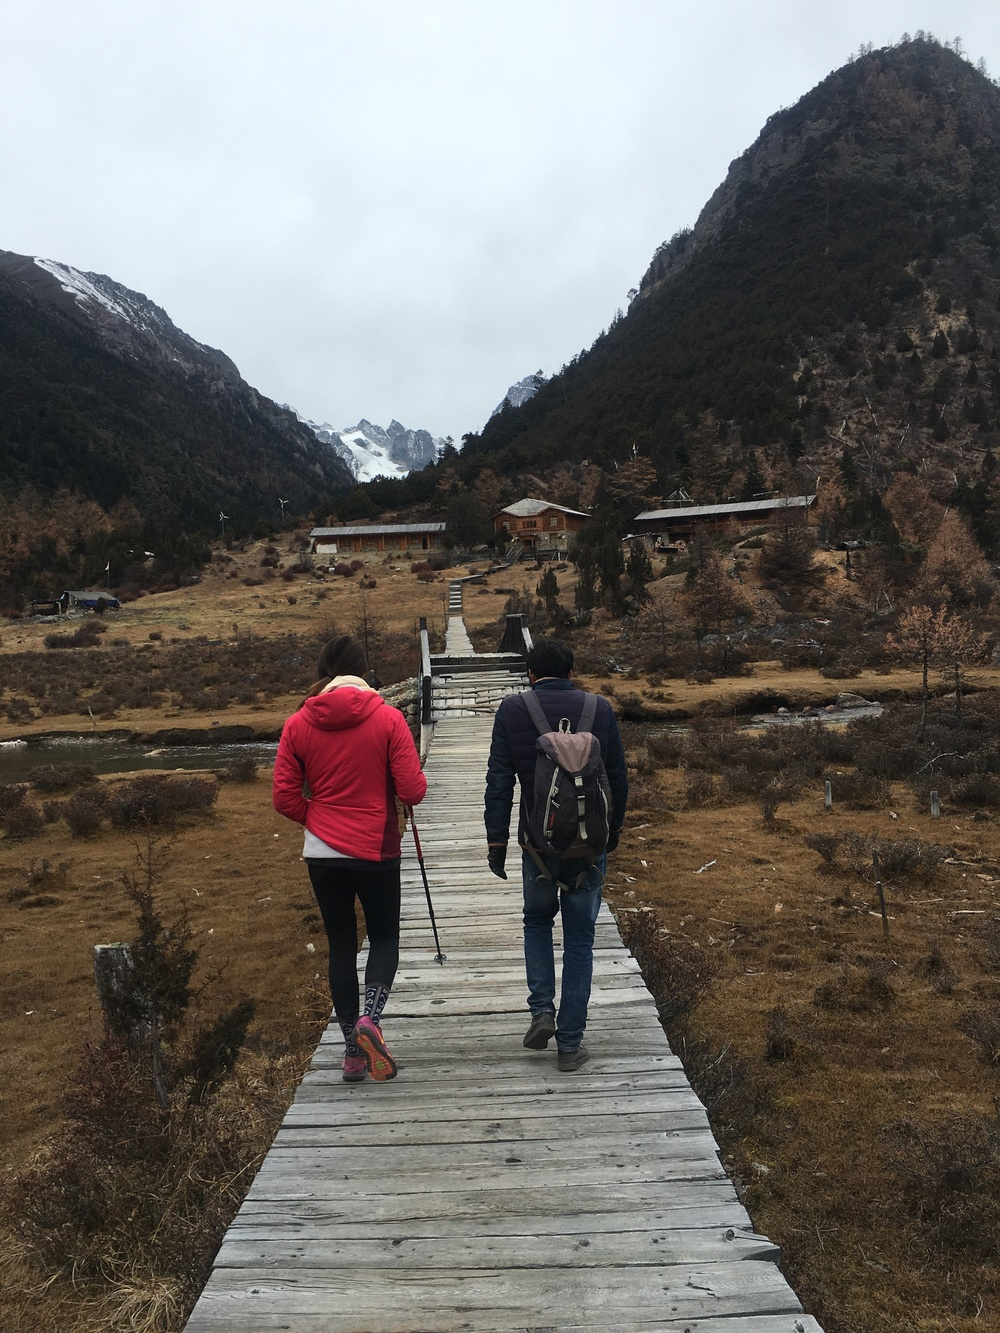 Hike in the valley of the Baima Snow Mountain